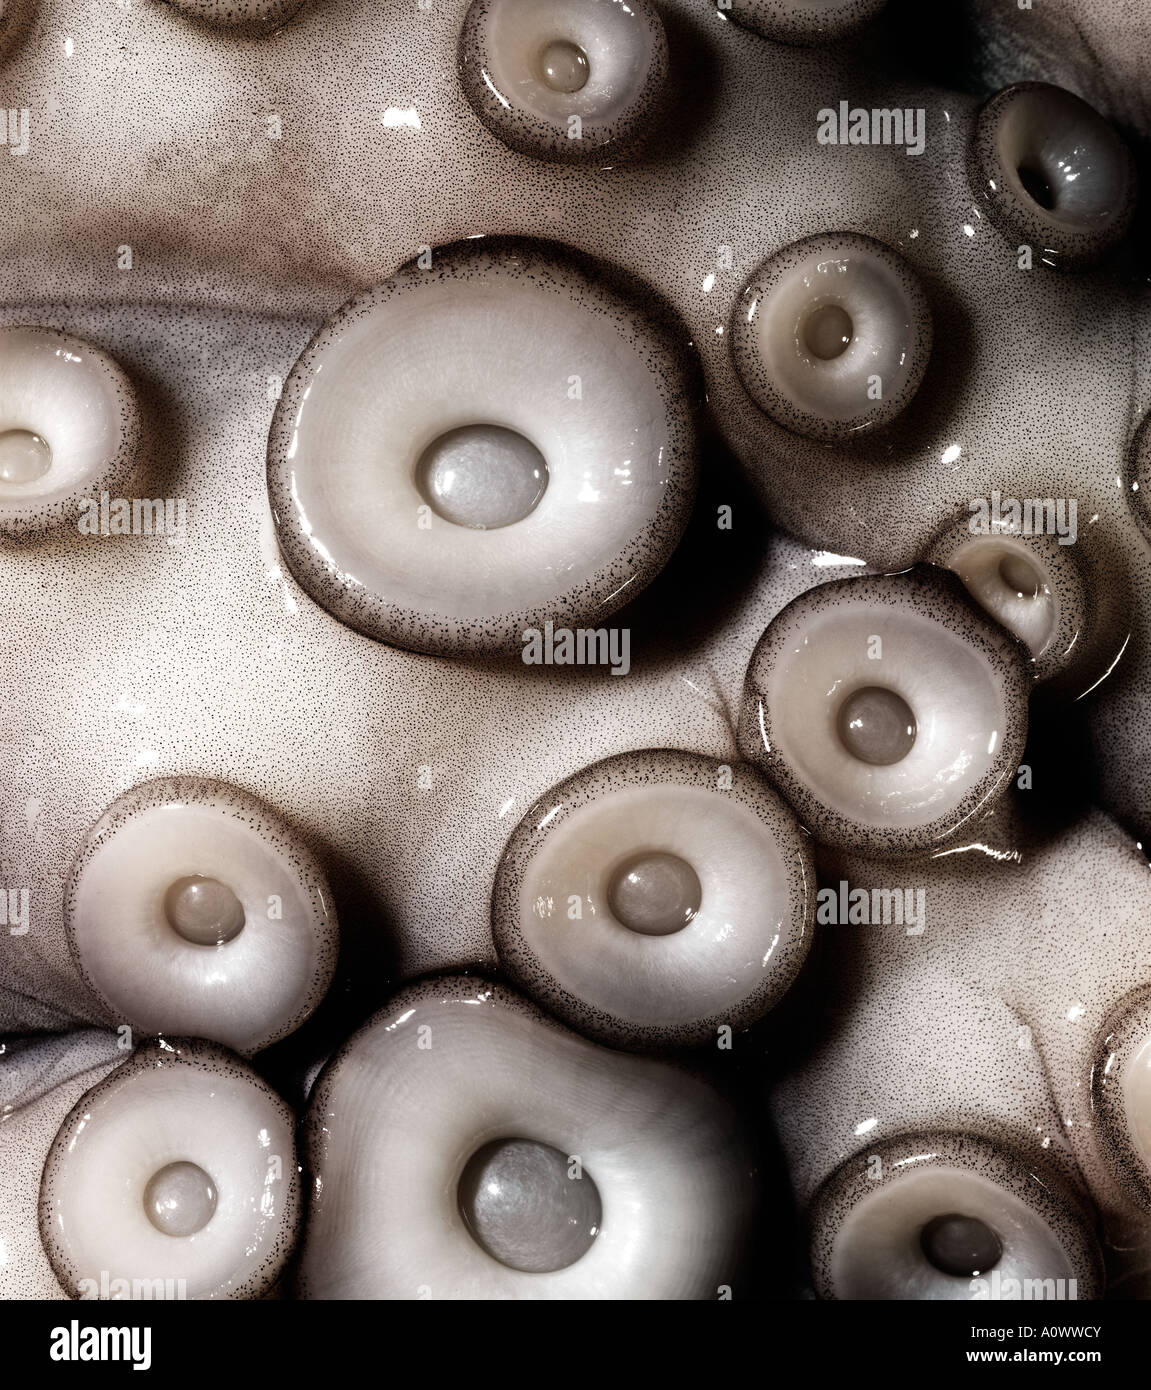 Le poulpe cuit pas close up de drageons Octopus Photo Stock